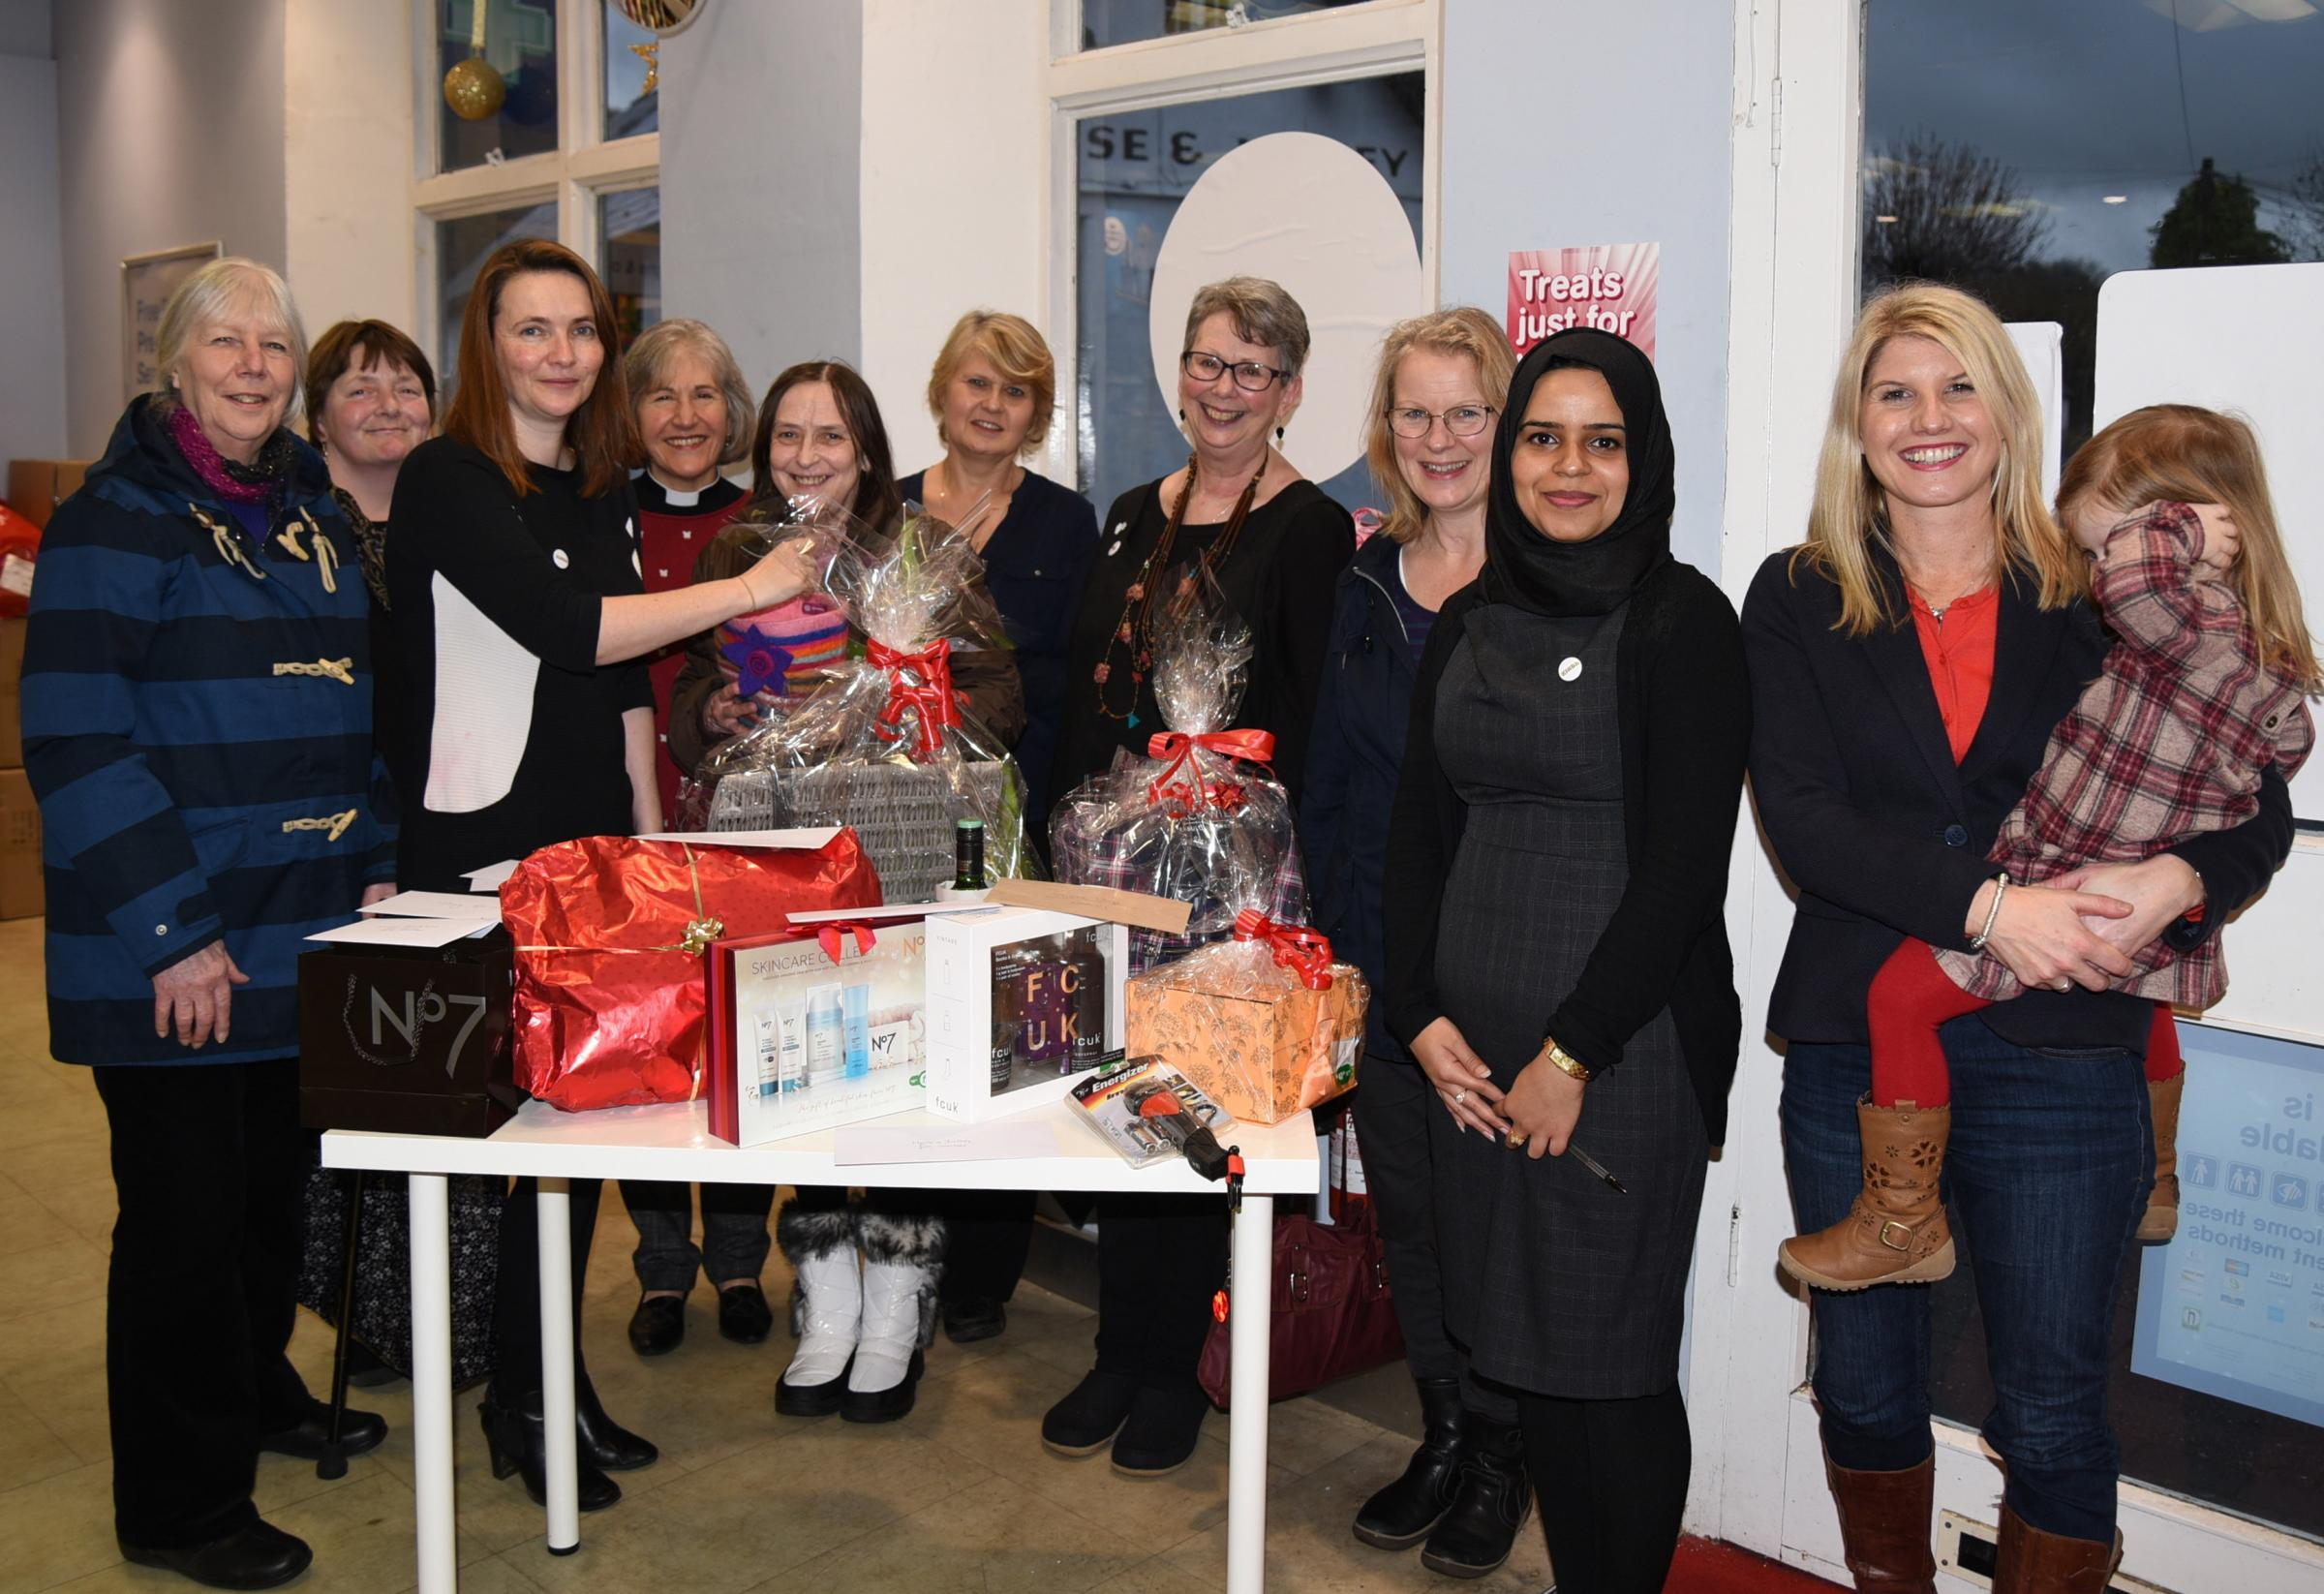 KINDA members Kris Keefe and Harri Smith, A.M. Kirsty Williams, KINDA members Rev Melia Cope, Joanne Phelan, Wendy Aynsleigh, Julia Llewellyn Roberts, Louise Croad, Rafia Jamil store manager at Boots and area manager Donna Kakouris and her daughter Bella